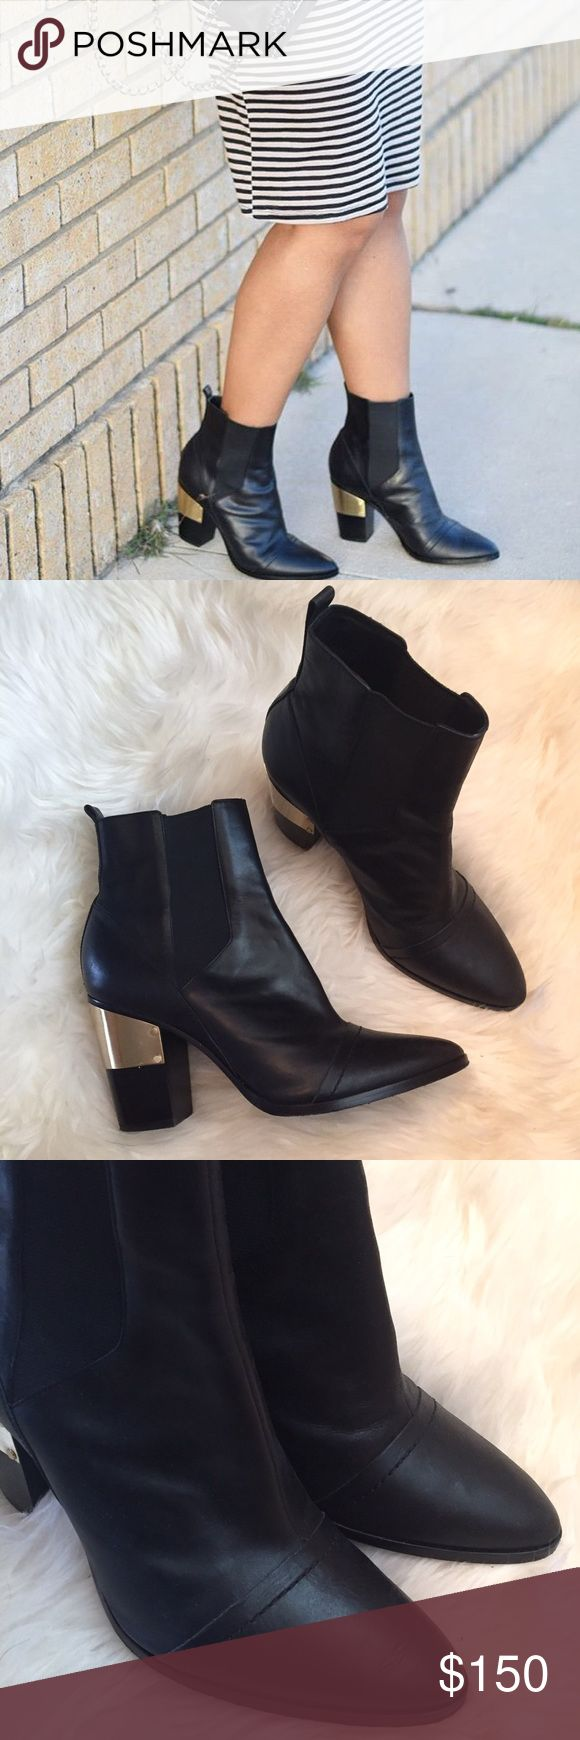 """Rachel Zoe Black Leather Ankle Boots Worn a few times. Black leather semi pointed toe booties with gold tone hardware accents to stacked block heels. Heel height 3.5"""". Elastic band at sides. Minor wear overall, creases in leather from wear, minor scuffing and rubbed out area in back, tried to show in pictures flaws. Nothing is noticeable unless close. Could use some leather cleaner to clean up.❌NO TRADES OR PAYPAL❌ Rachel Zoe Shoes Ankle Boots & Booties"""